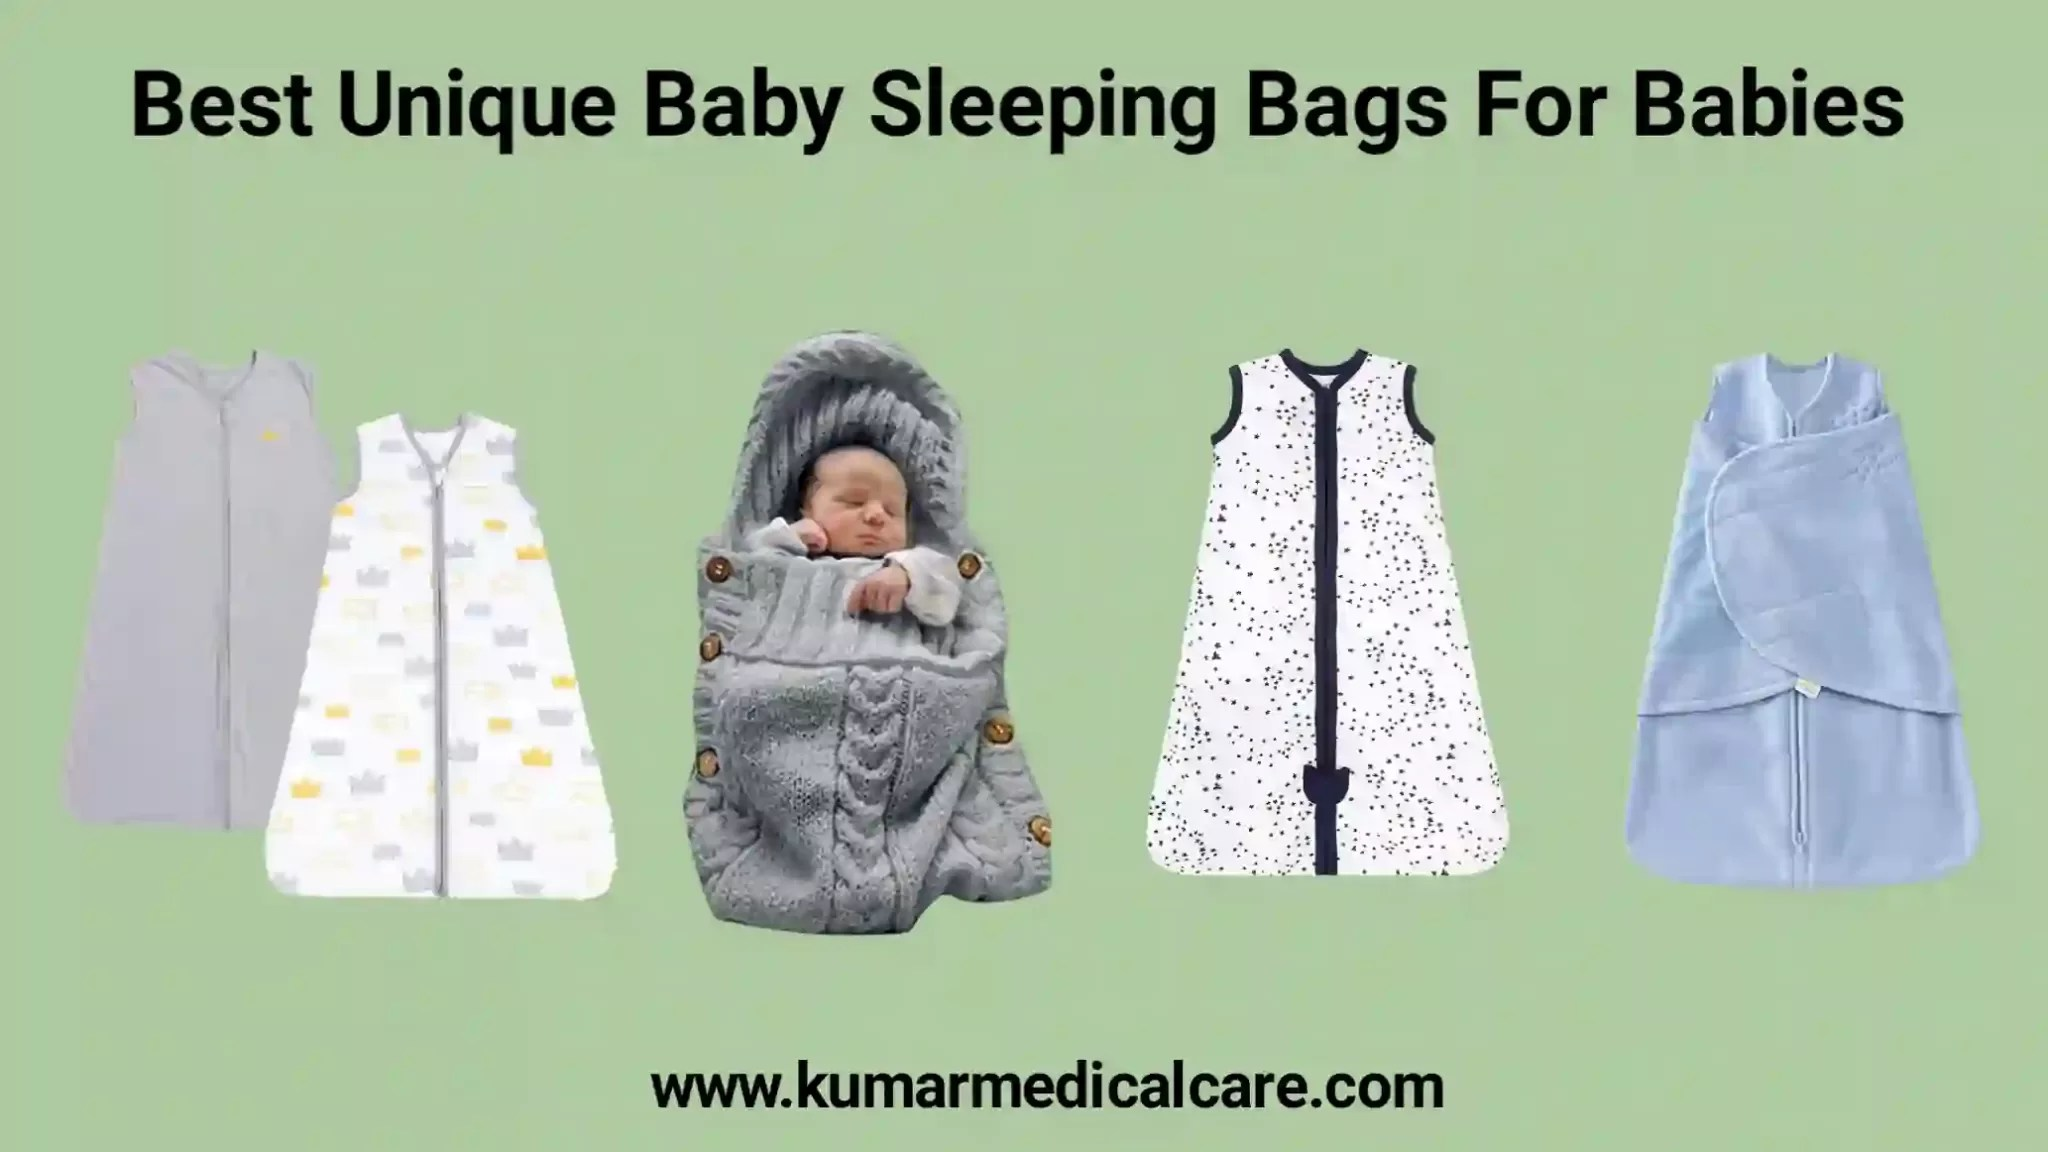 Best Unique Baby Sleeping Bags for Babies